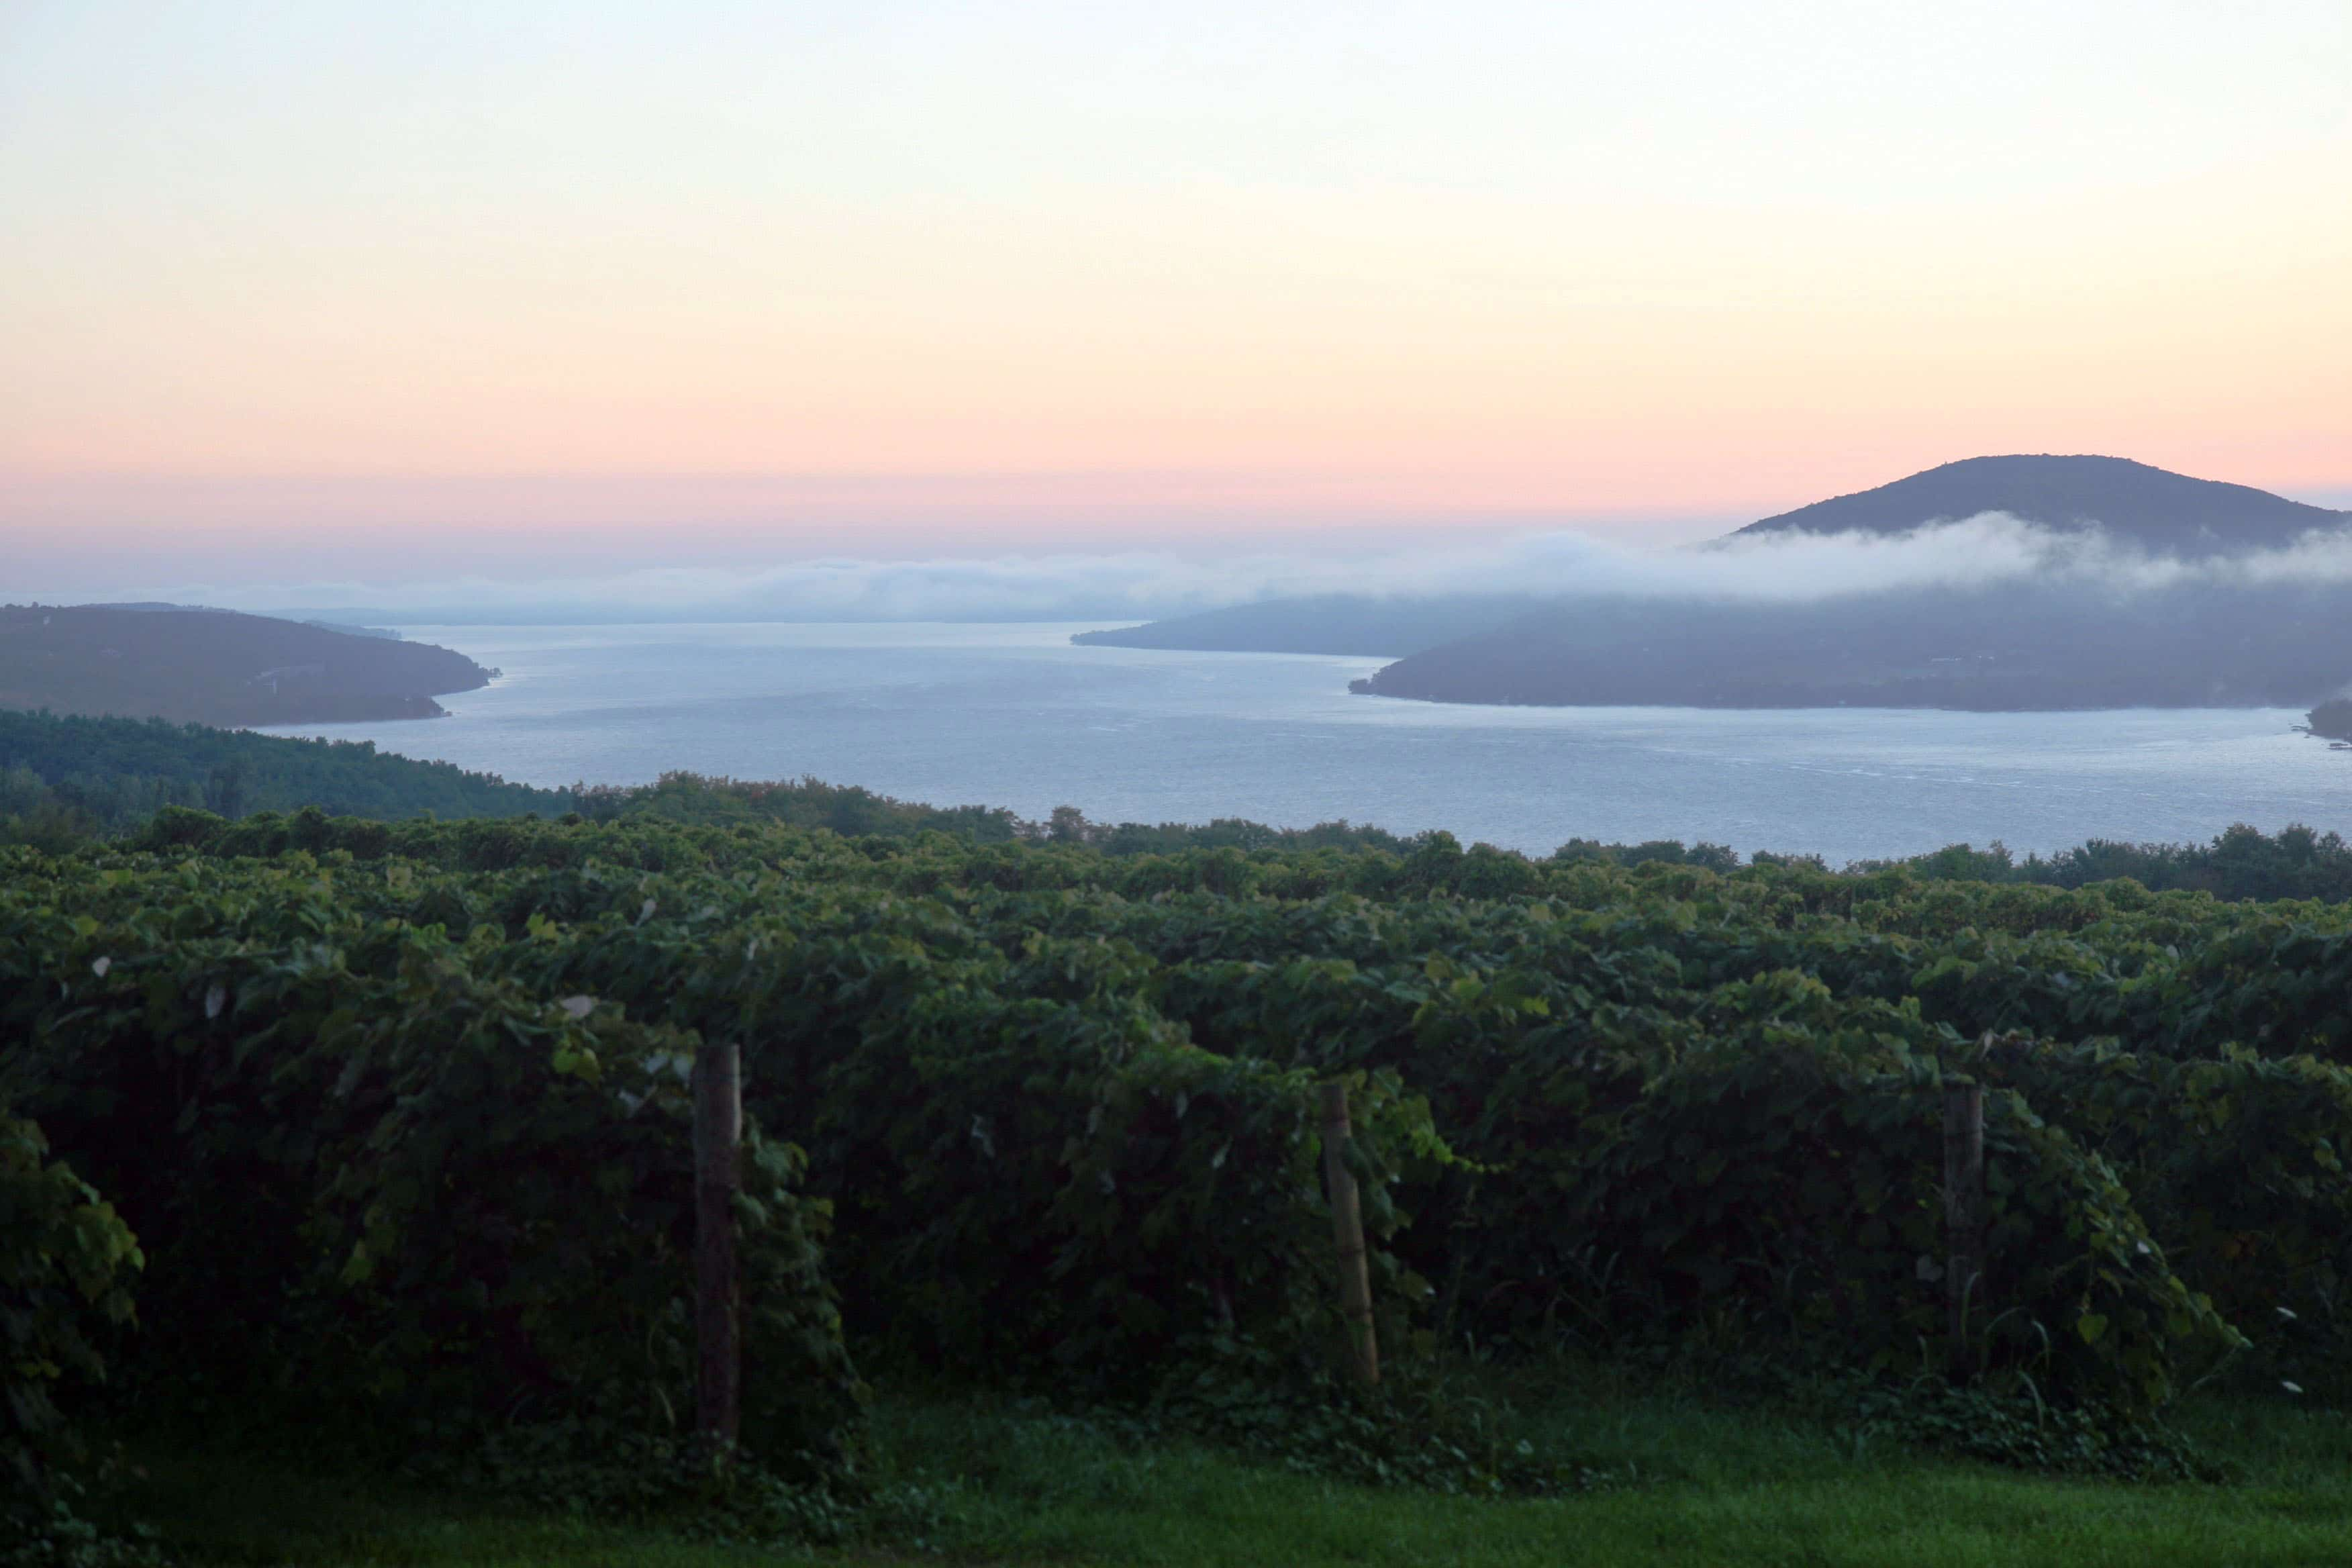 sunrise overlooking vineyard in finger lakes